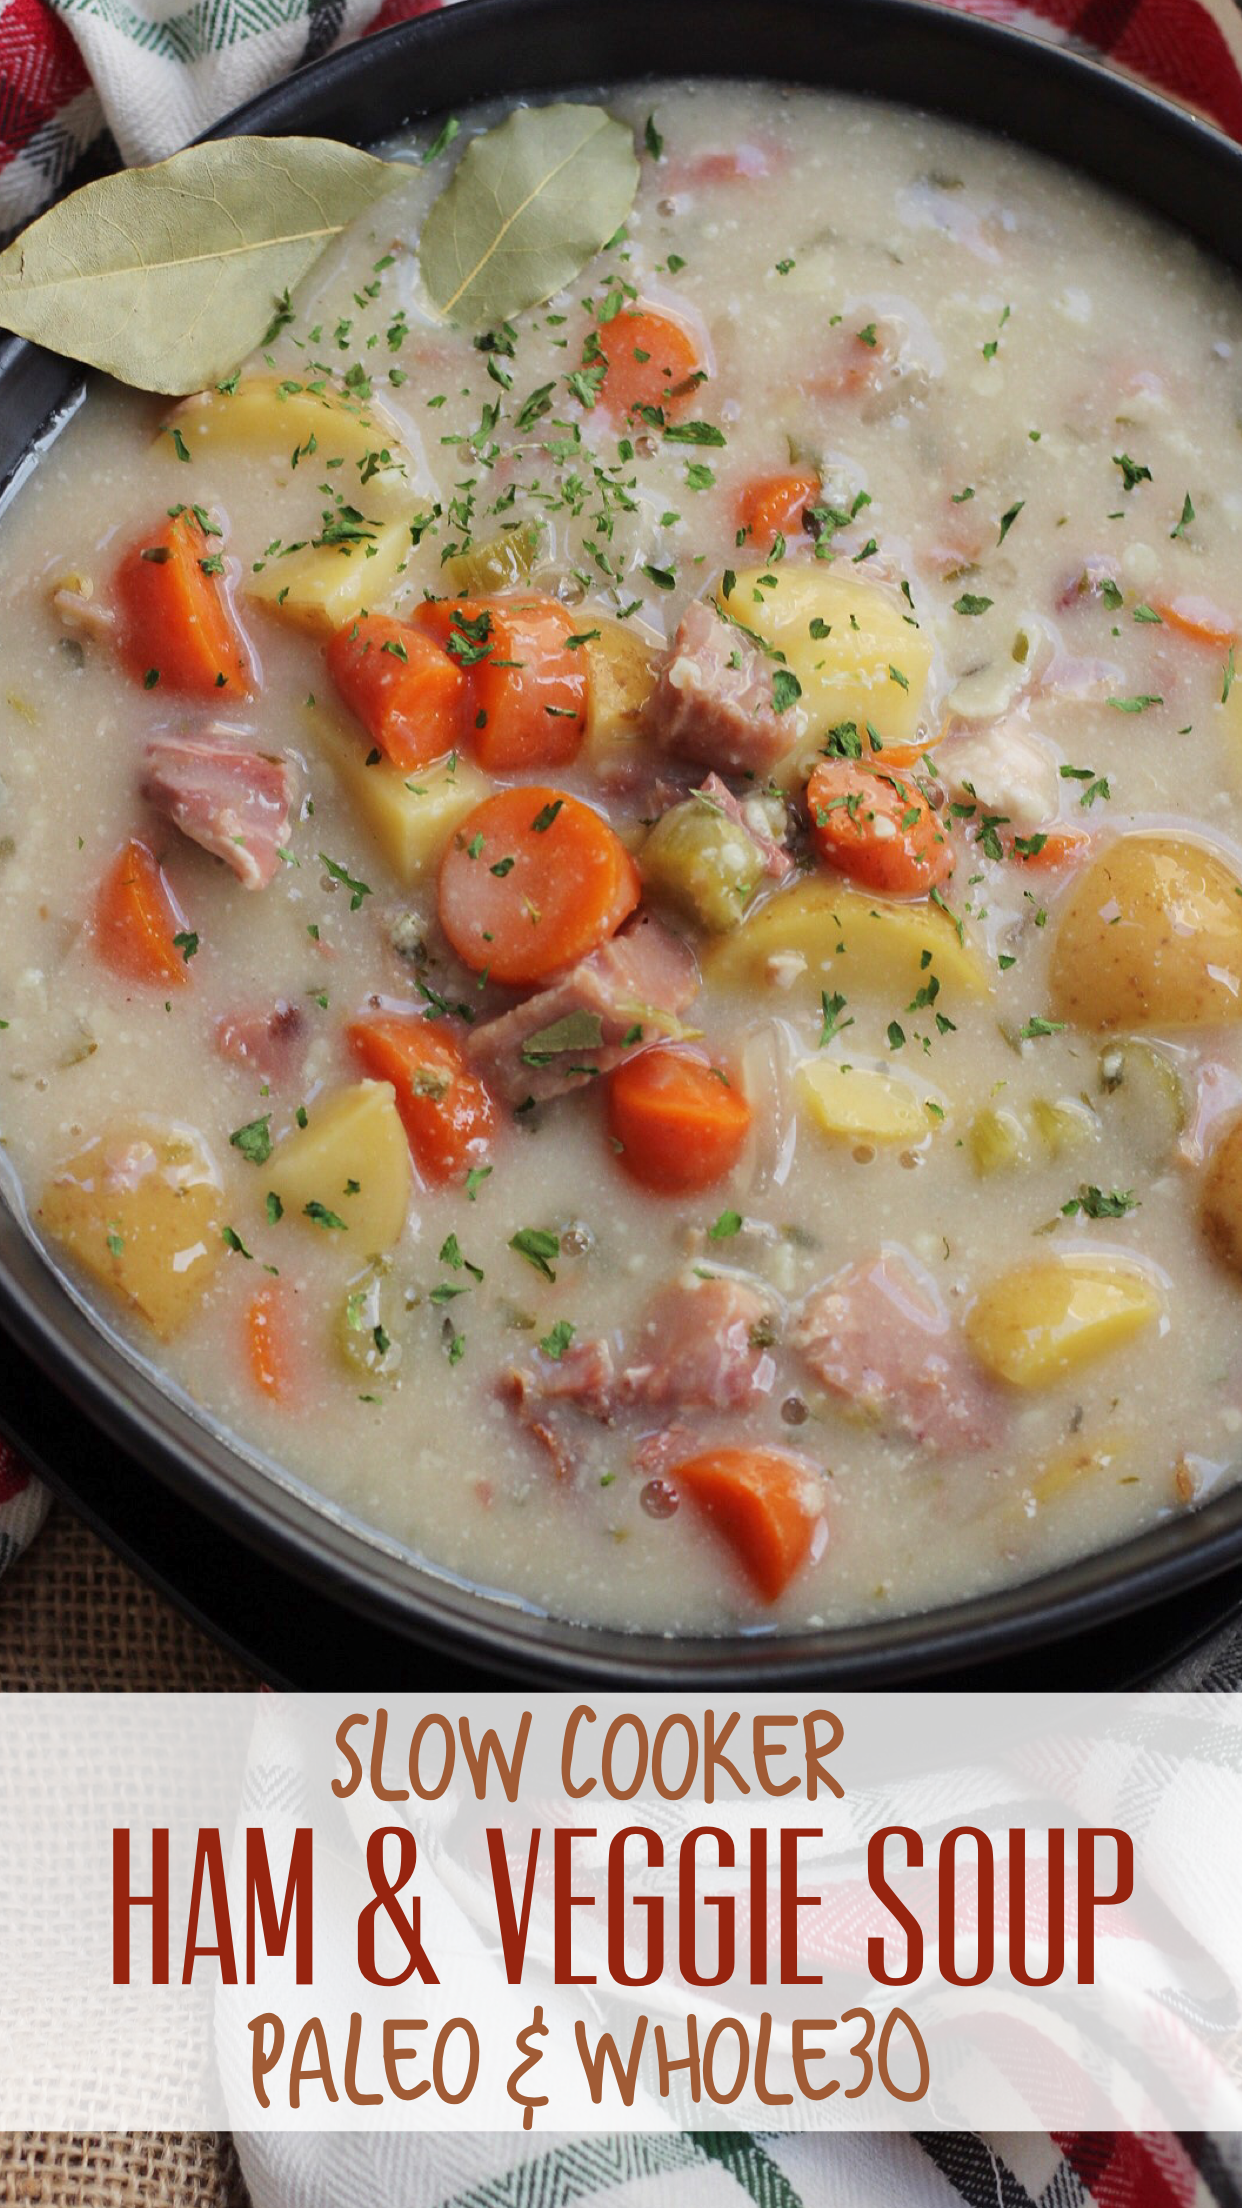 Slow Cooker Ham and Potato soup loaded with veggies, an easy soup recipe to make and Paleo and Whole30! #slowcooker #hambonesoup #holidayham #paleo #whole30 via @paleobailey